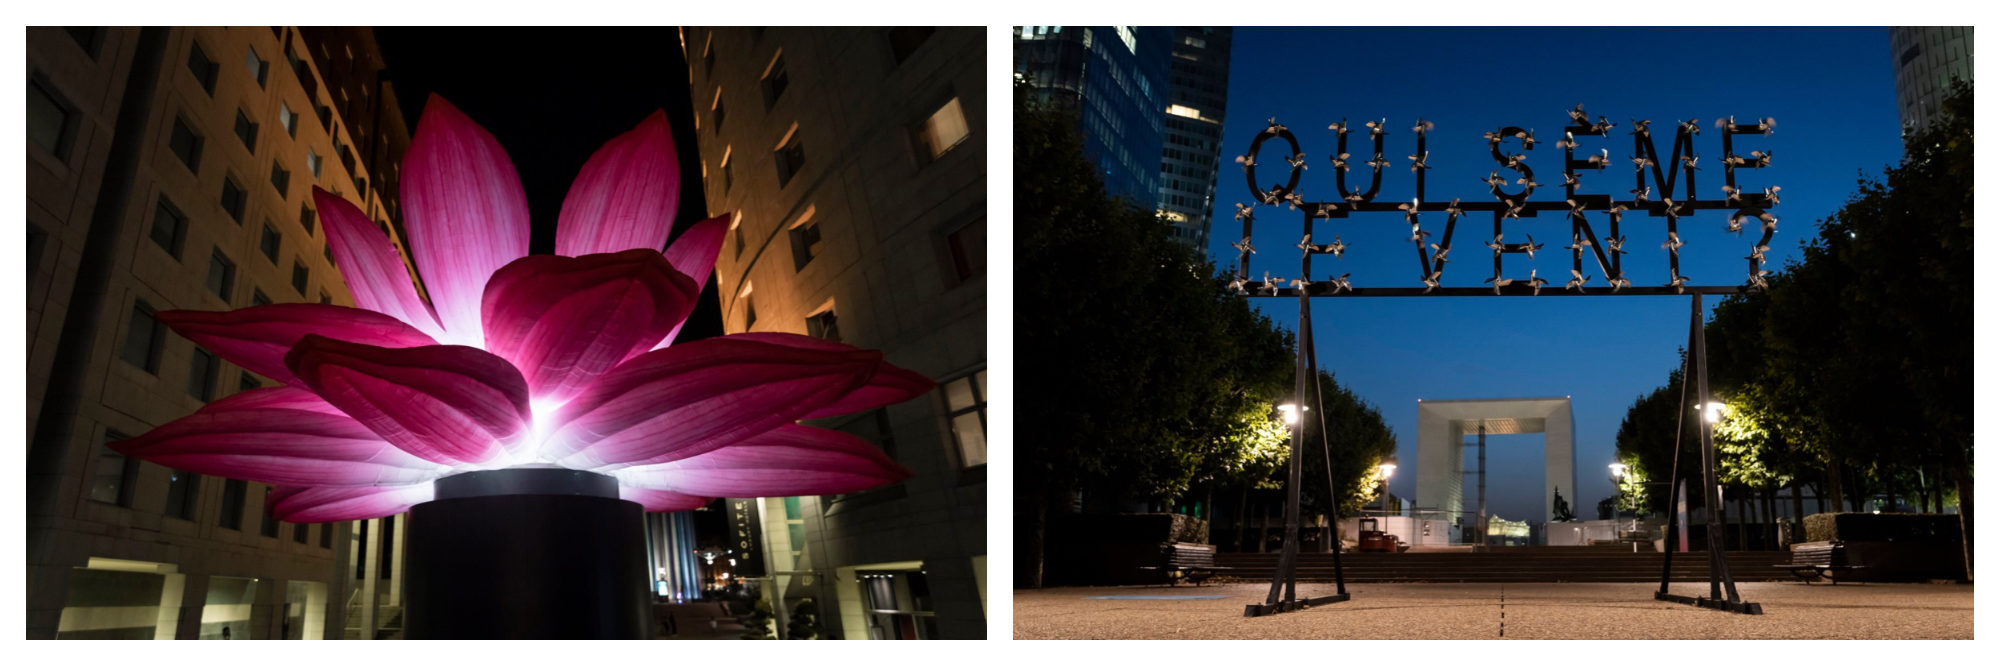 A huge pink lit-up flower (left) and a lit-up sign that reads 'Qui sème le vent?' (who escapes the wind) with the La Defense arch in the background.